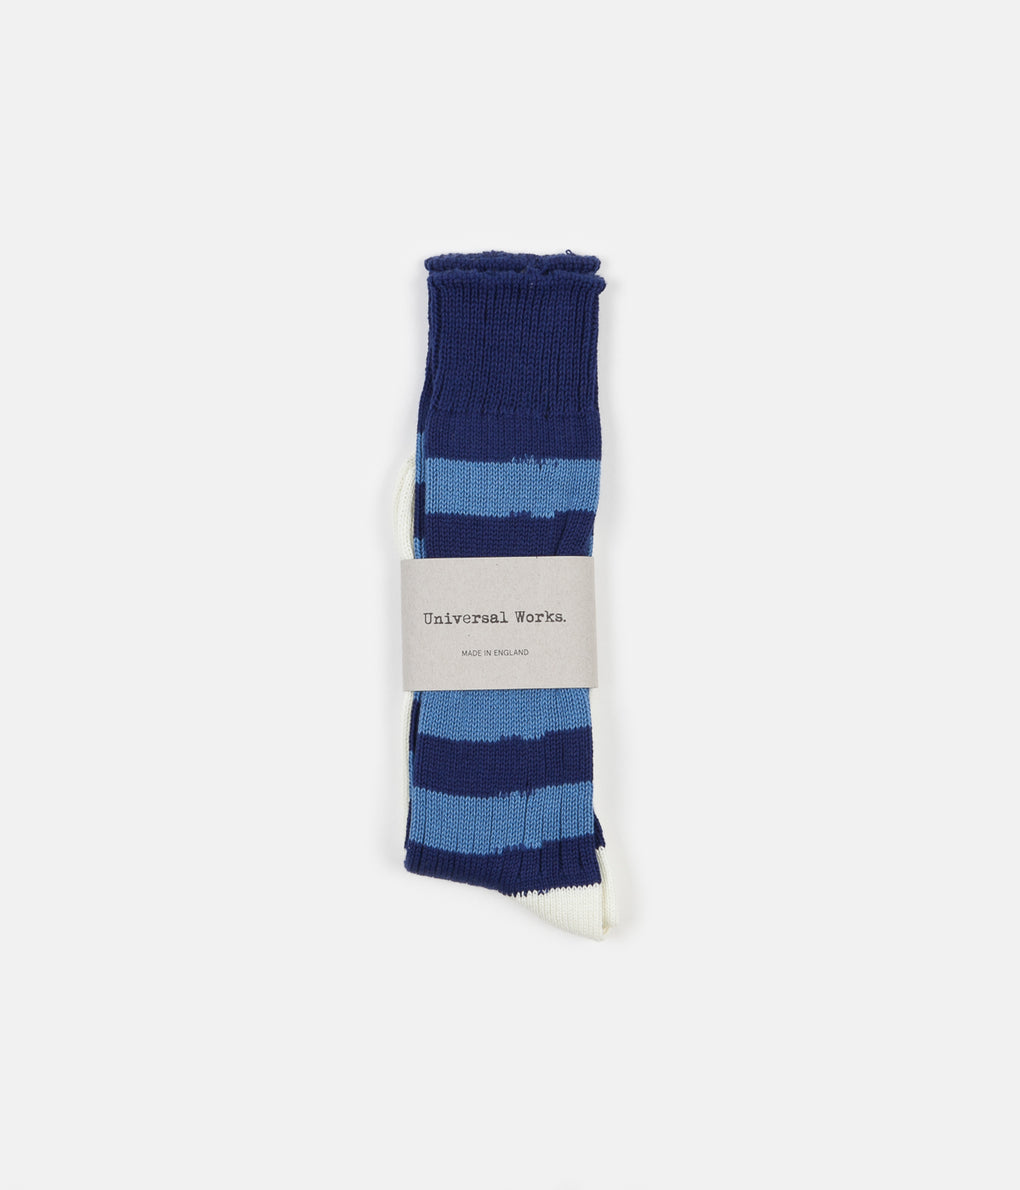 Universal Works Games Socks - Ecru